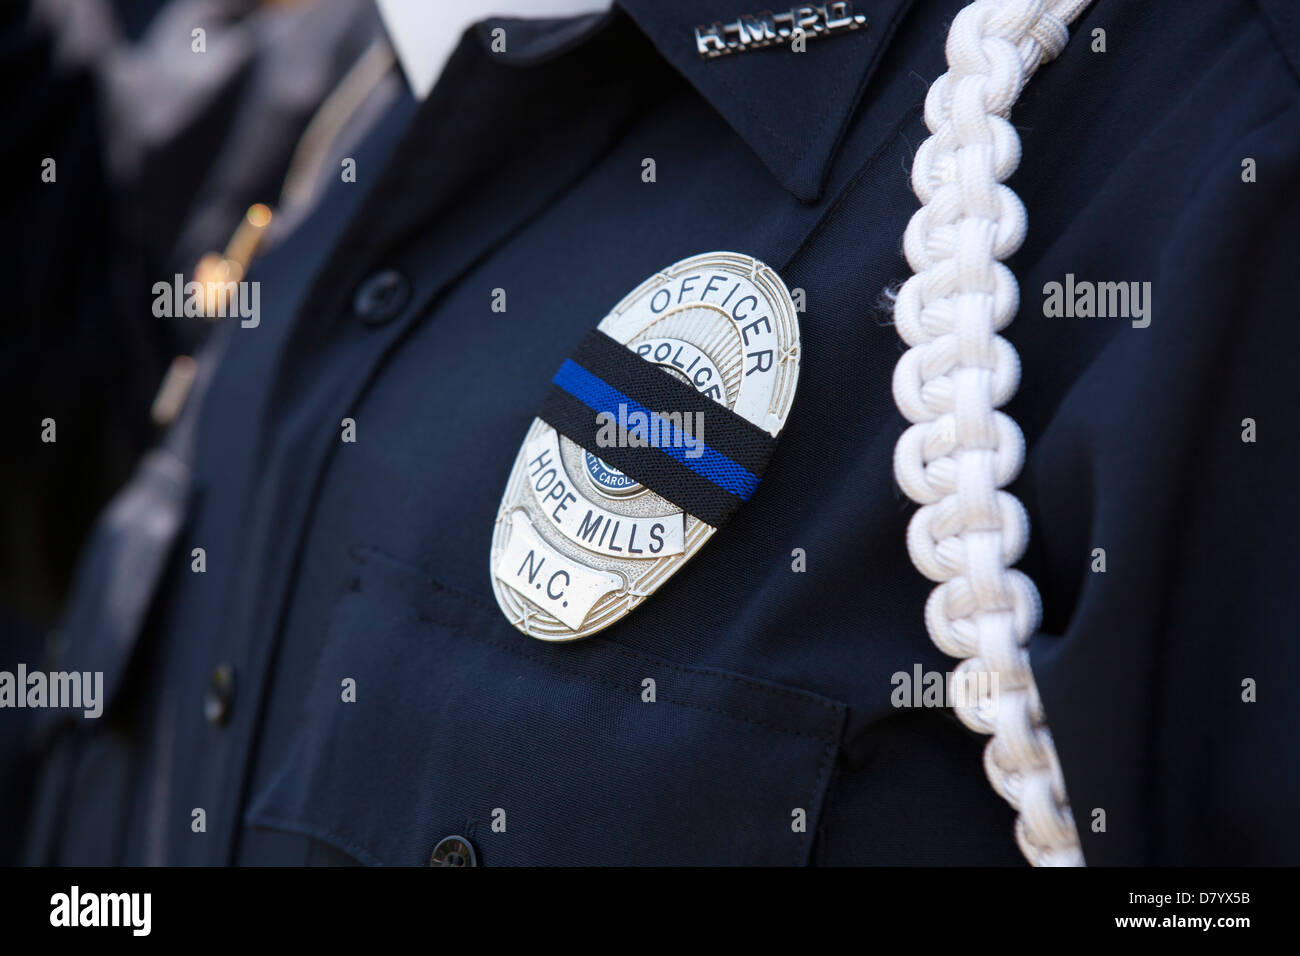 Mourning band across policeman's badge - Stock Image